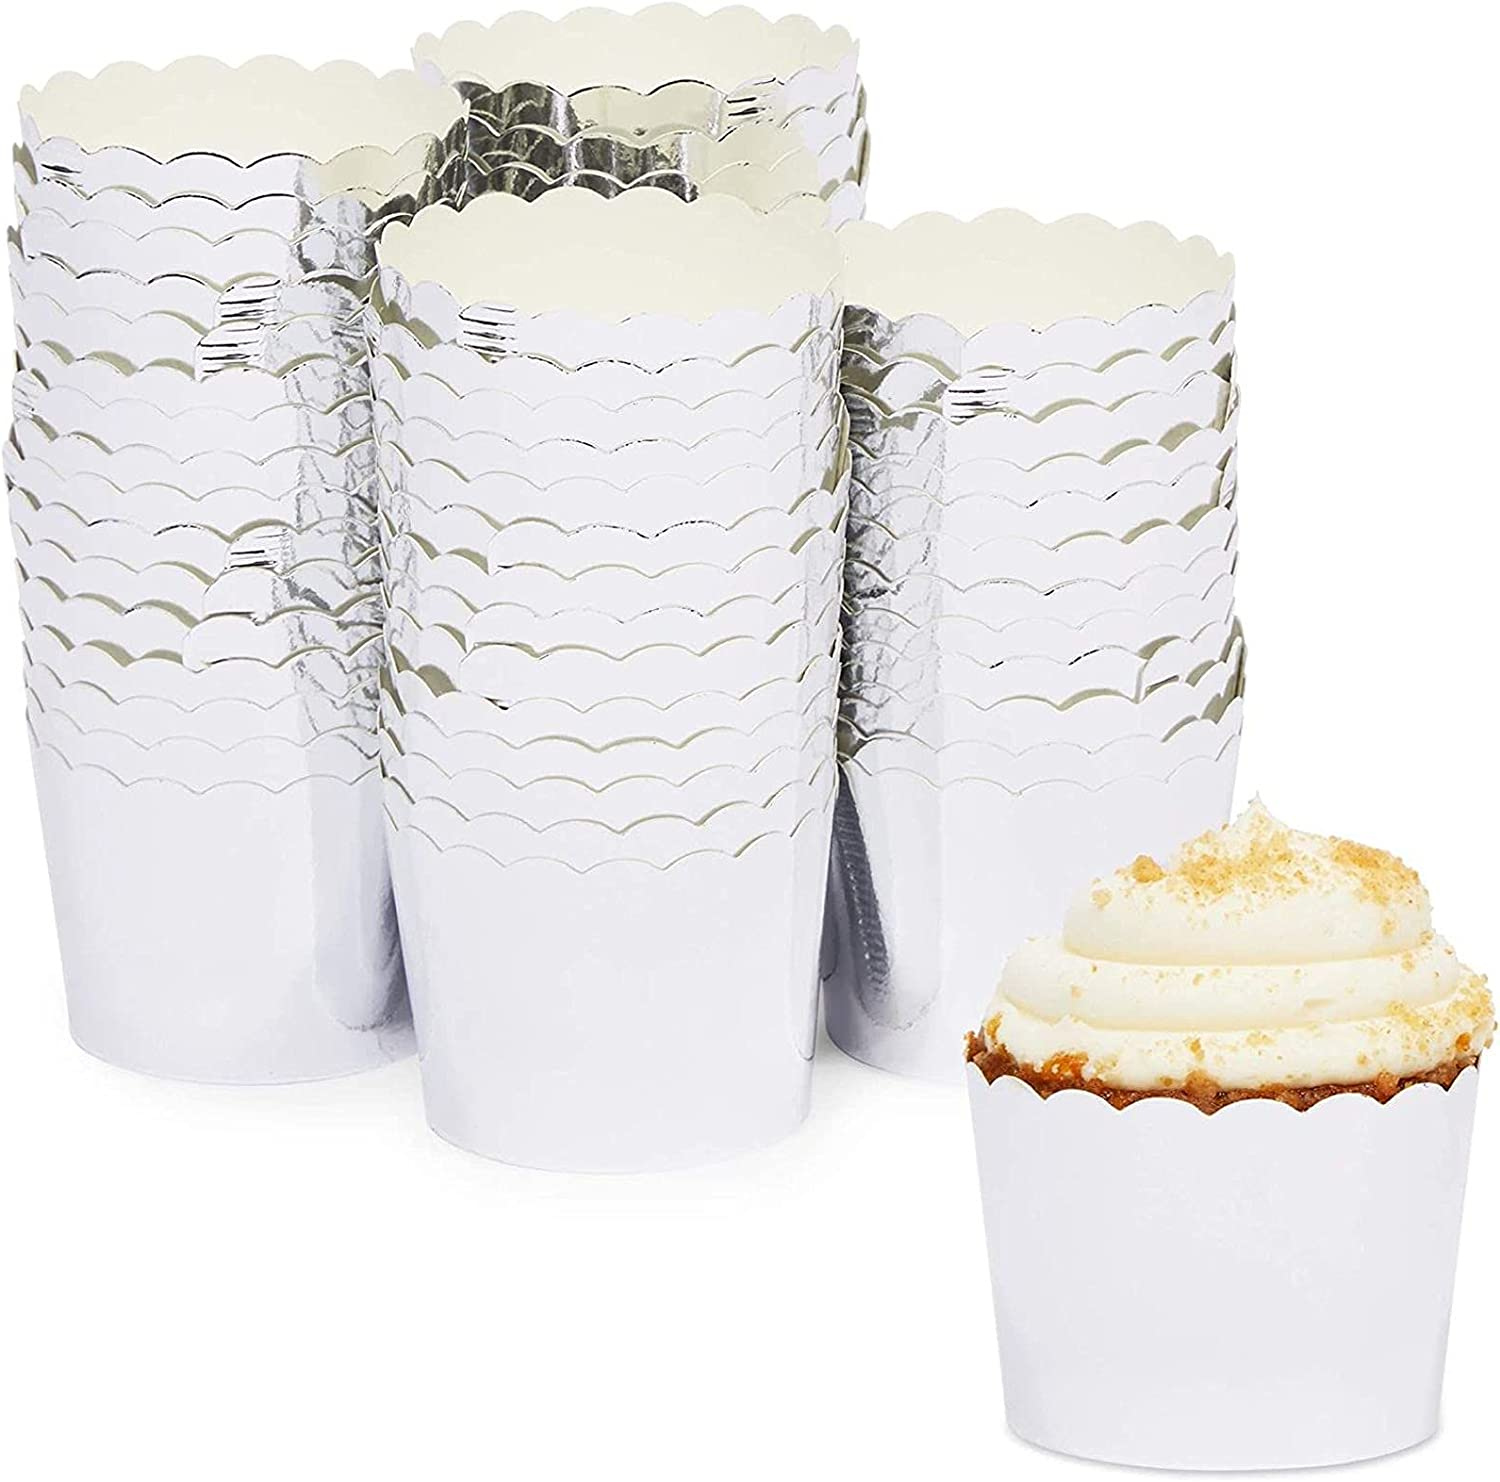 National products Silver Cupcake Liners Metallic Foil Cups Baking Cheap bargain Muffin 2.3 for